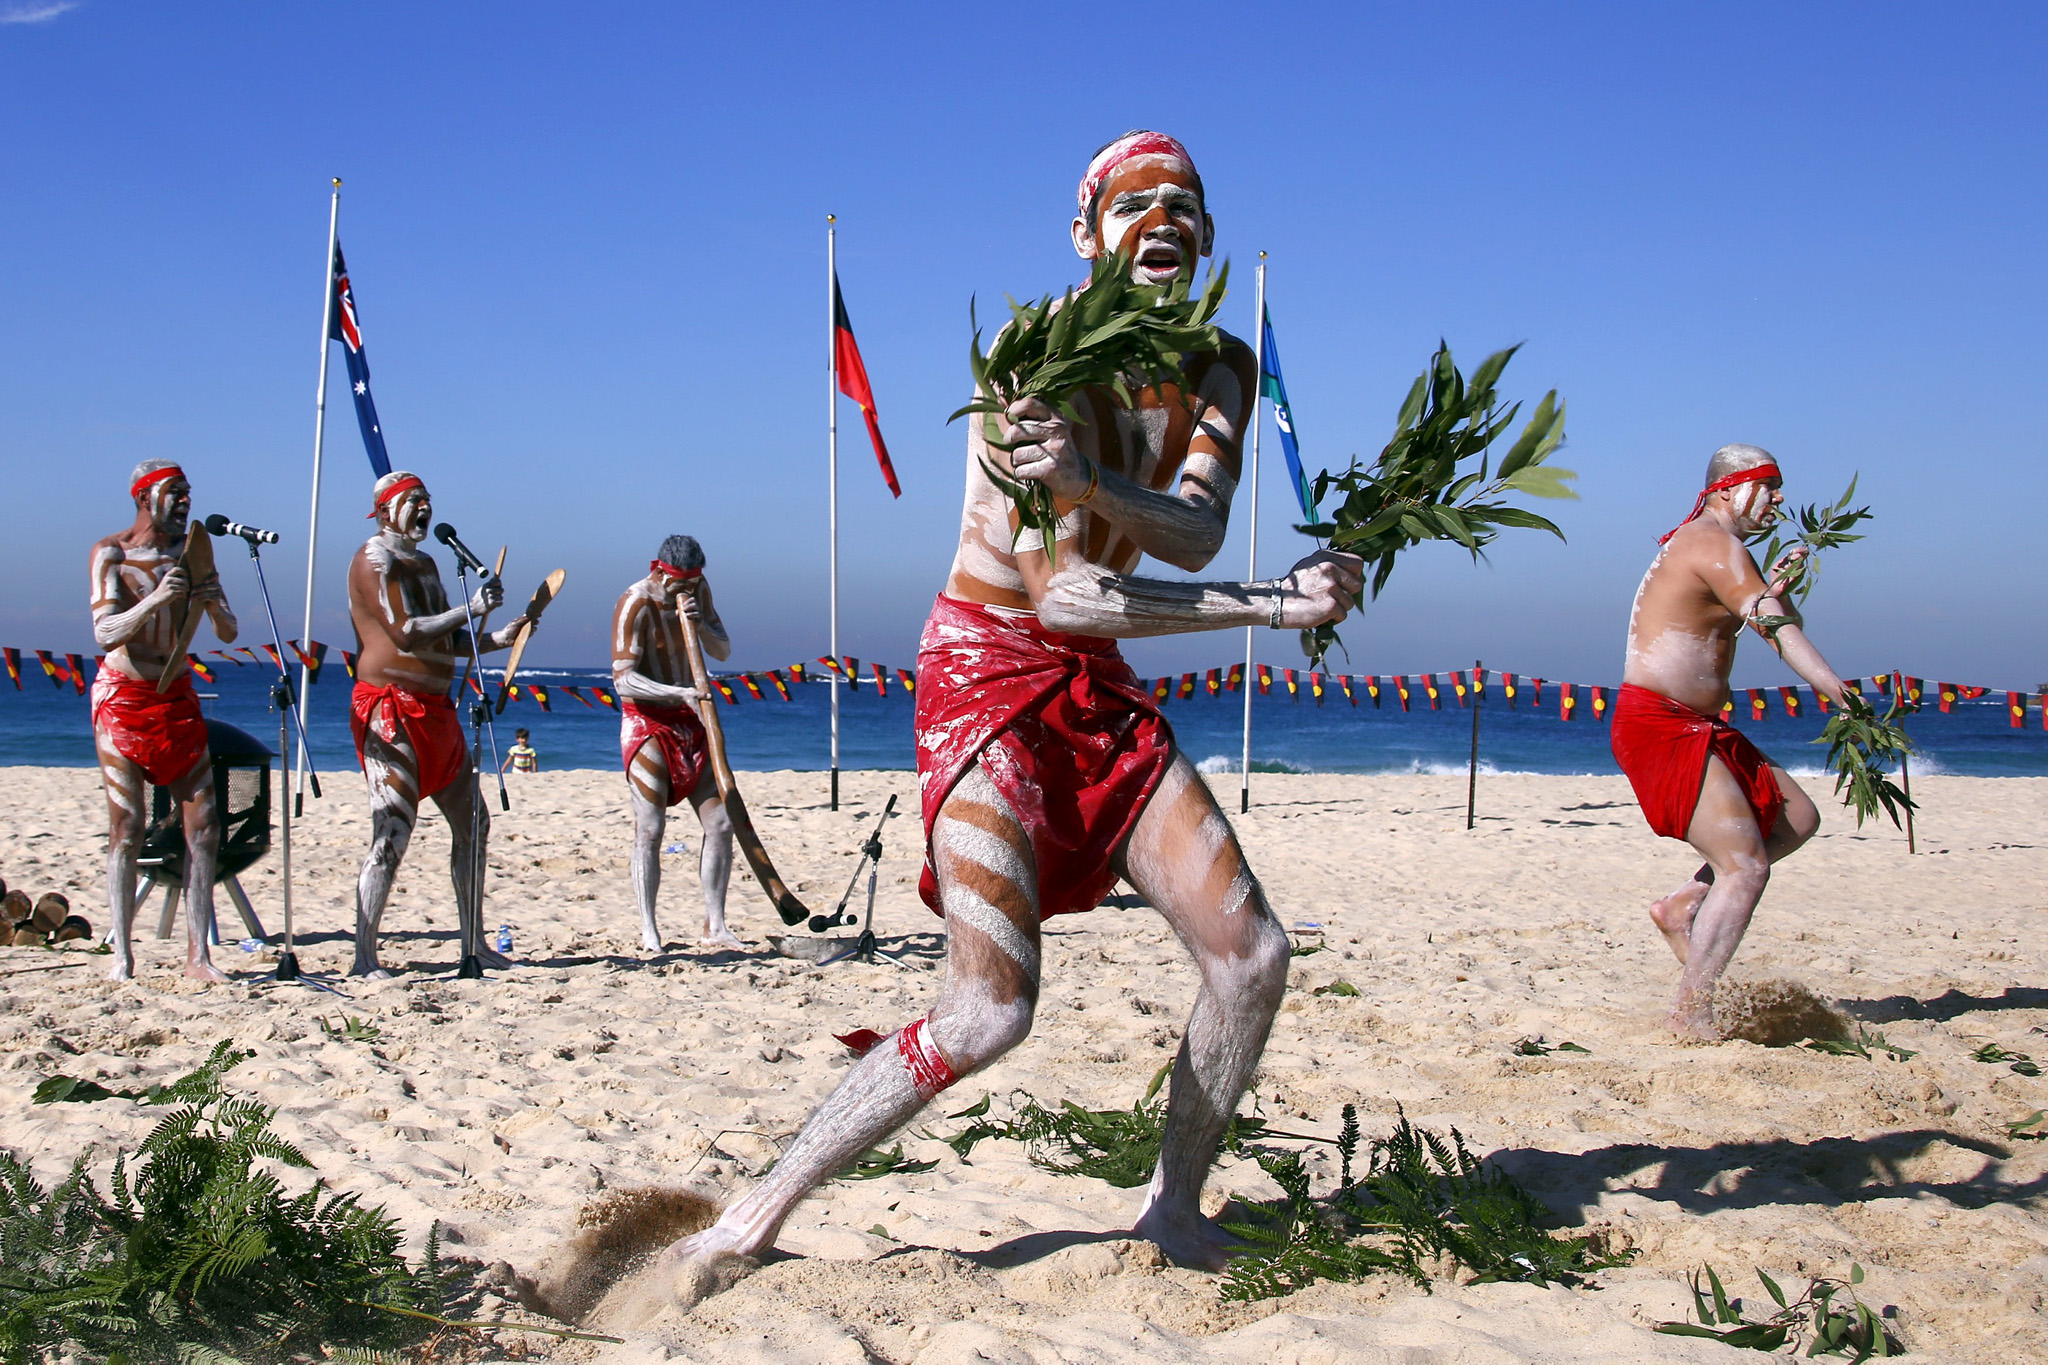 Traditonally dressed Australian Aboriginal performers hold gum-tree leaves as they dance on Sydney's Coogee Beach as they participate in a 'Corroboree'